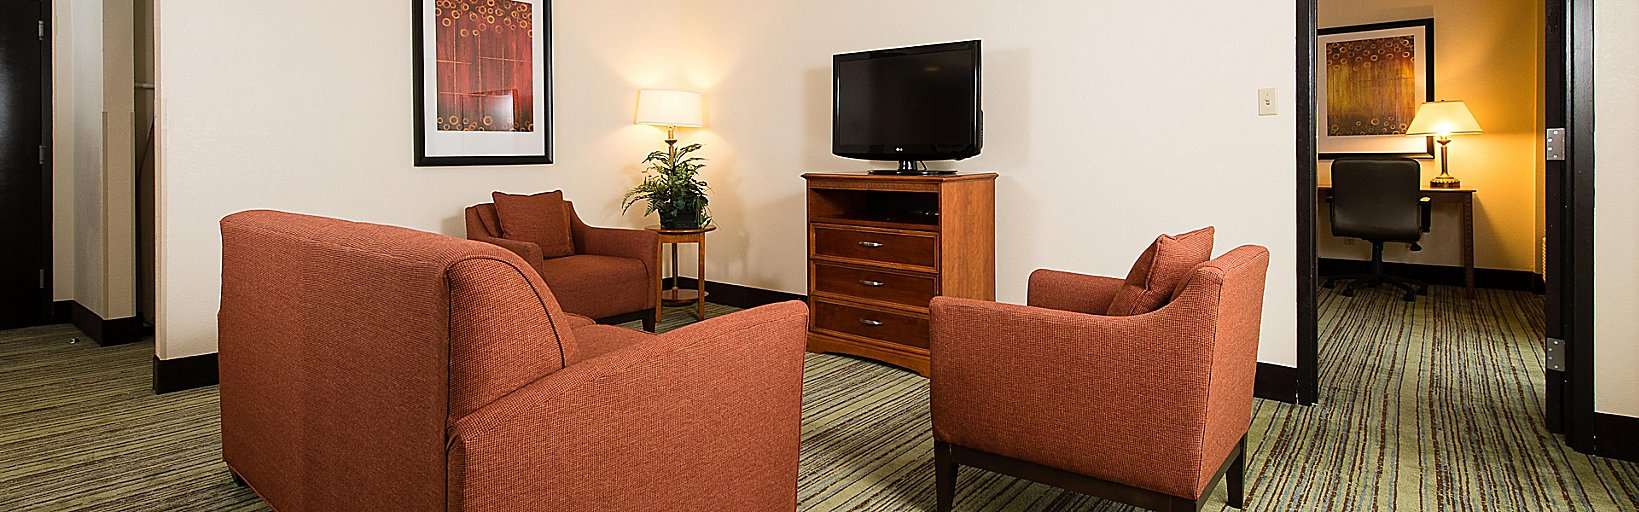 Holiday Inn Wilmington-Market St  - Room Pictures & Amenities